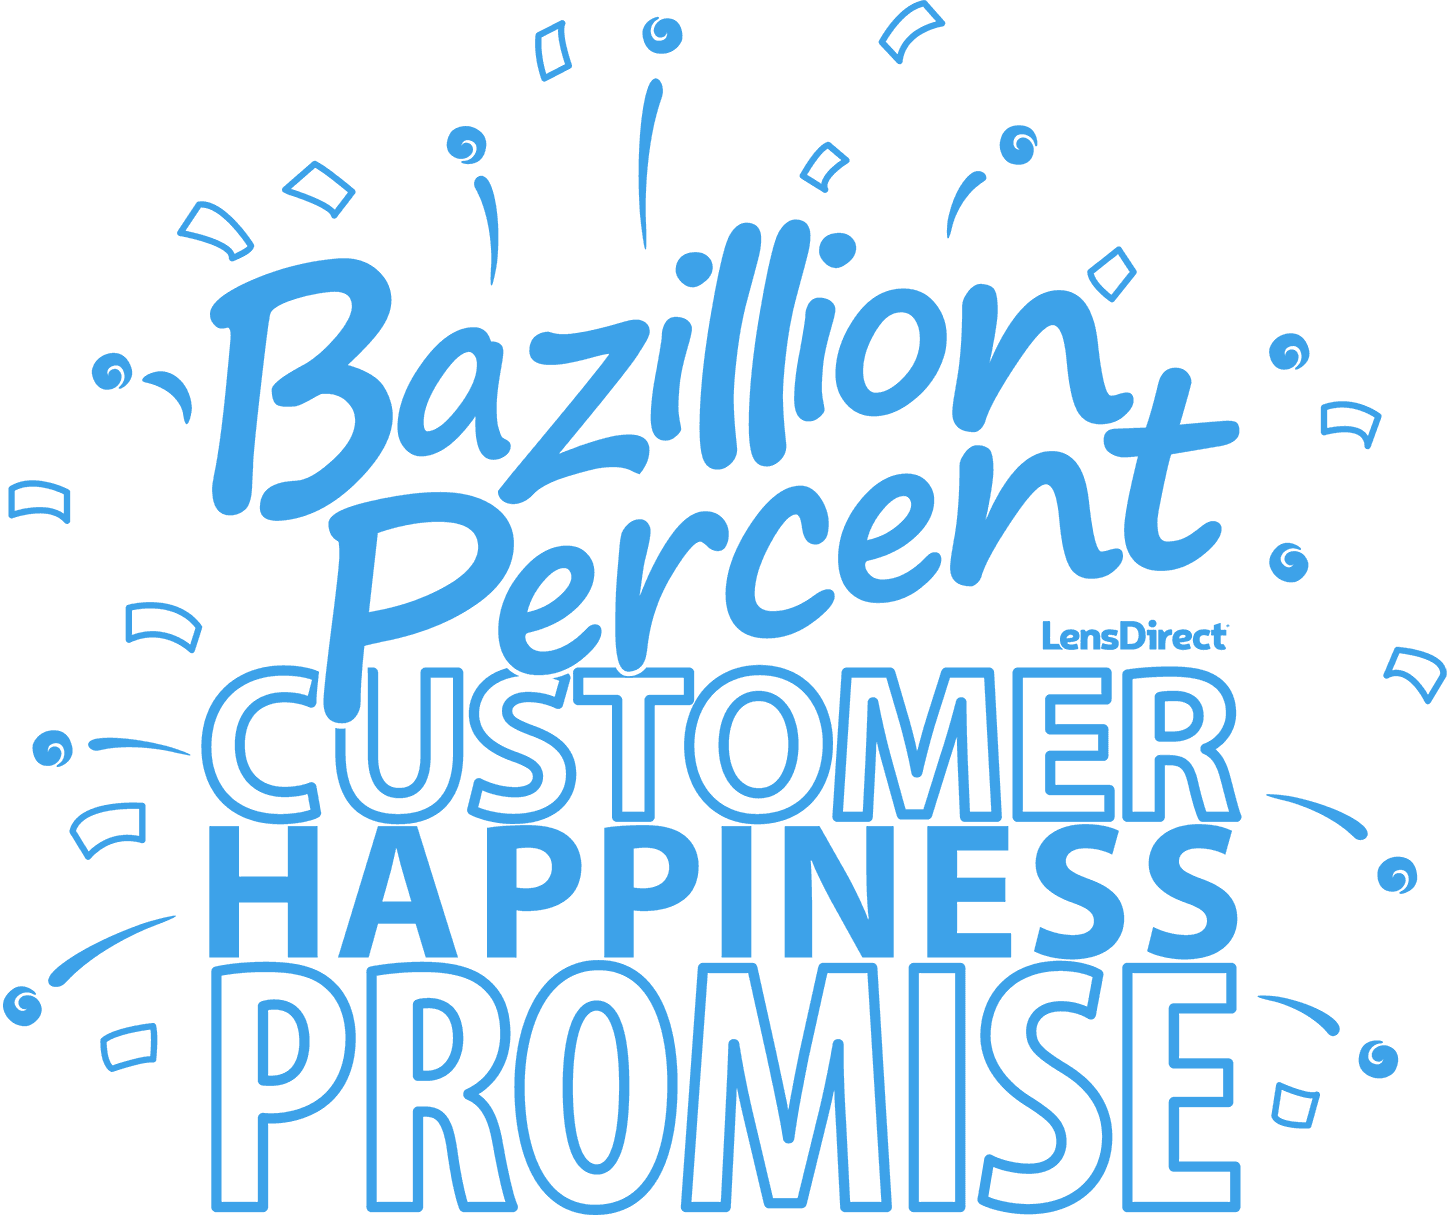 Bazillion percent customer happiness promise